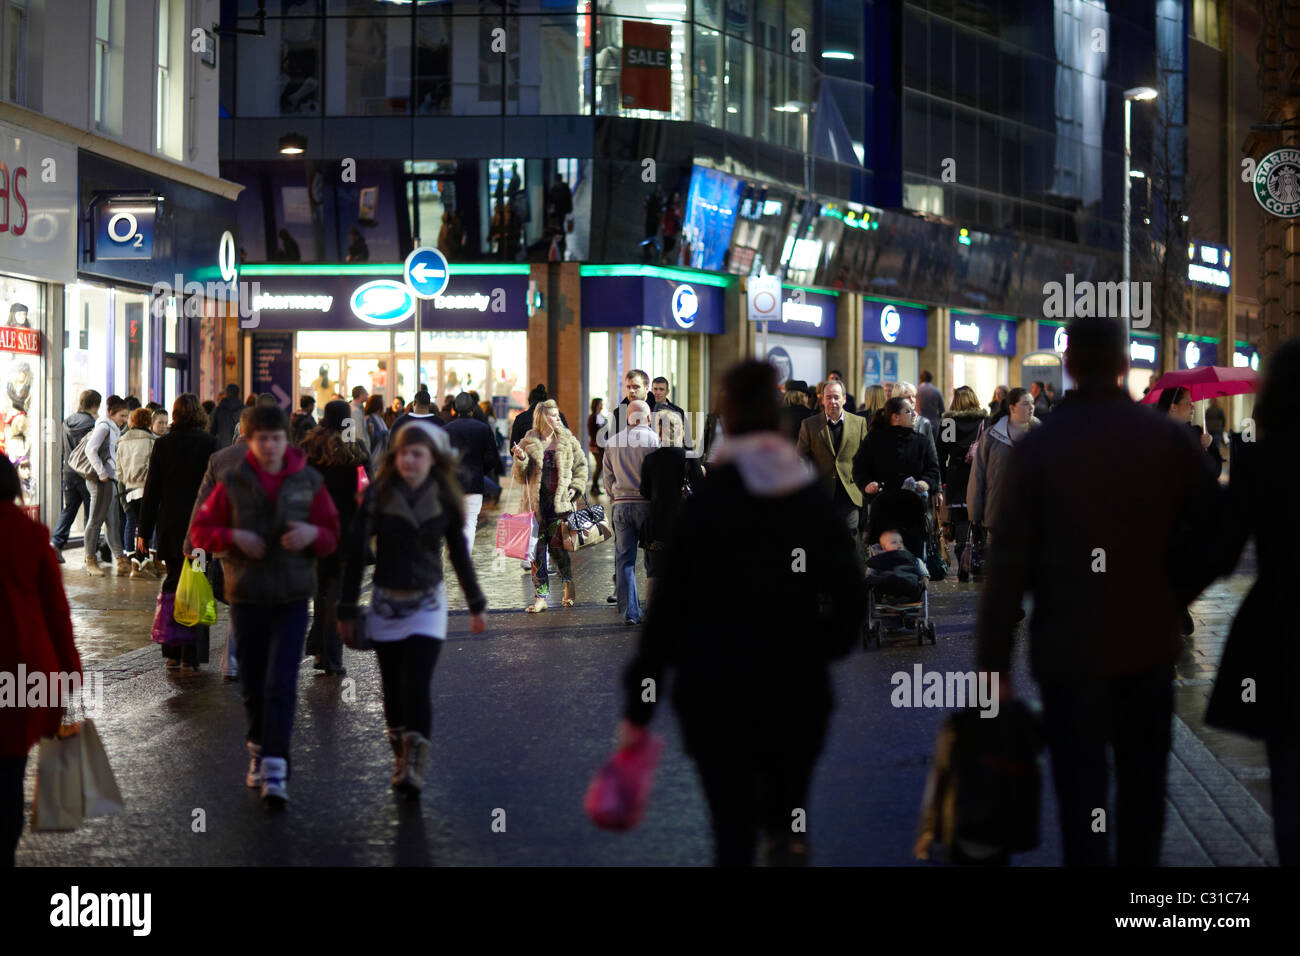 Leeds City Centre Shopping at night - Stock Image